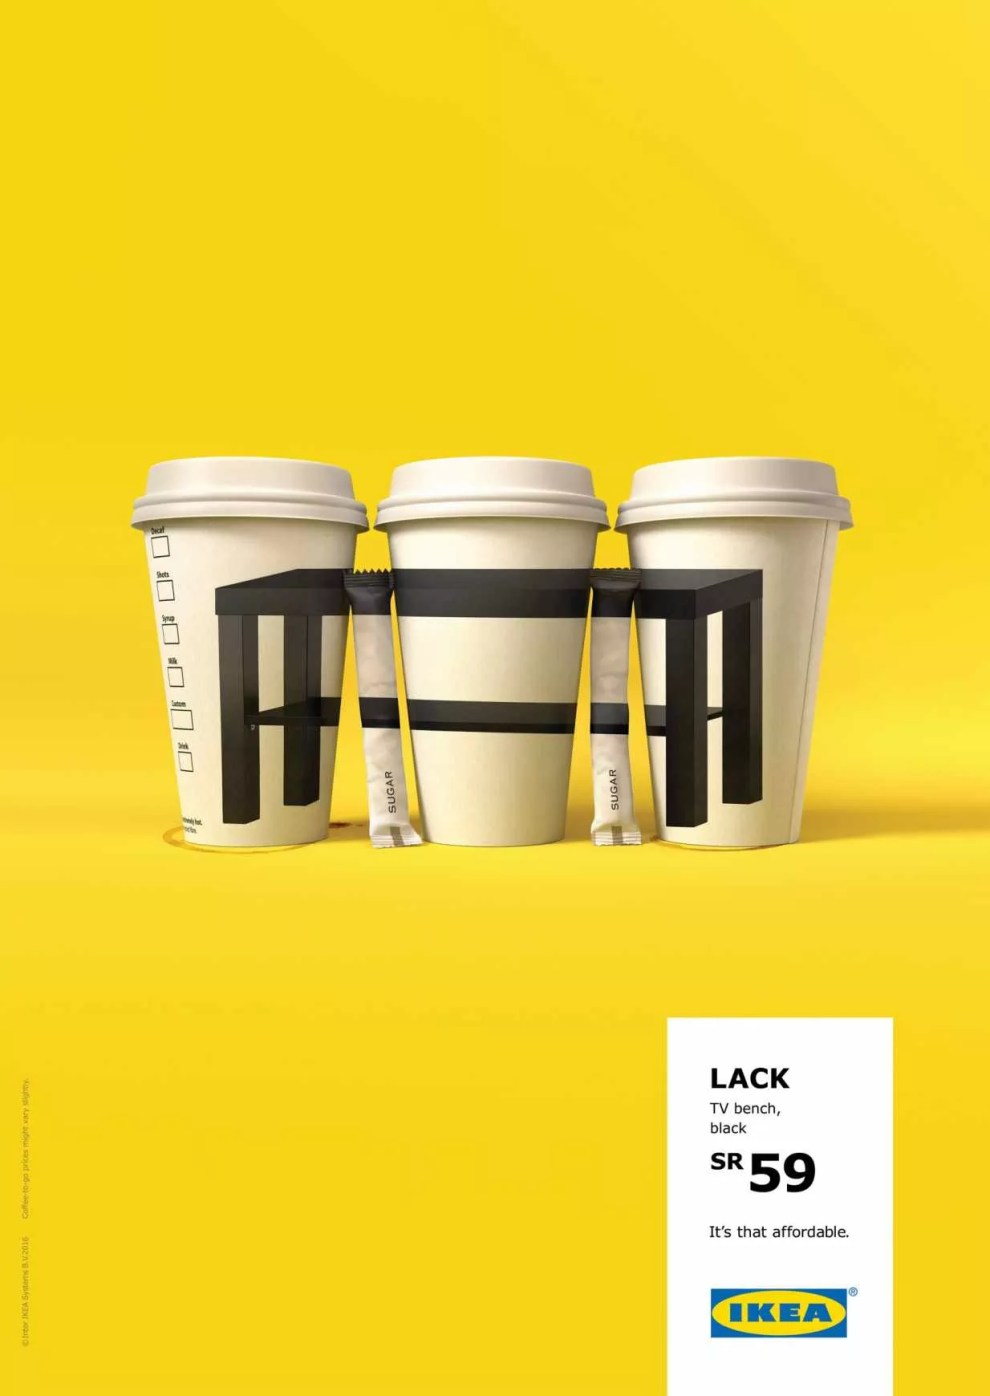 ikea-ads-clever-affordability-5